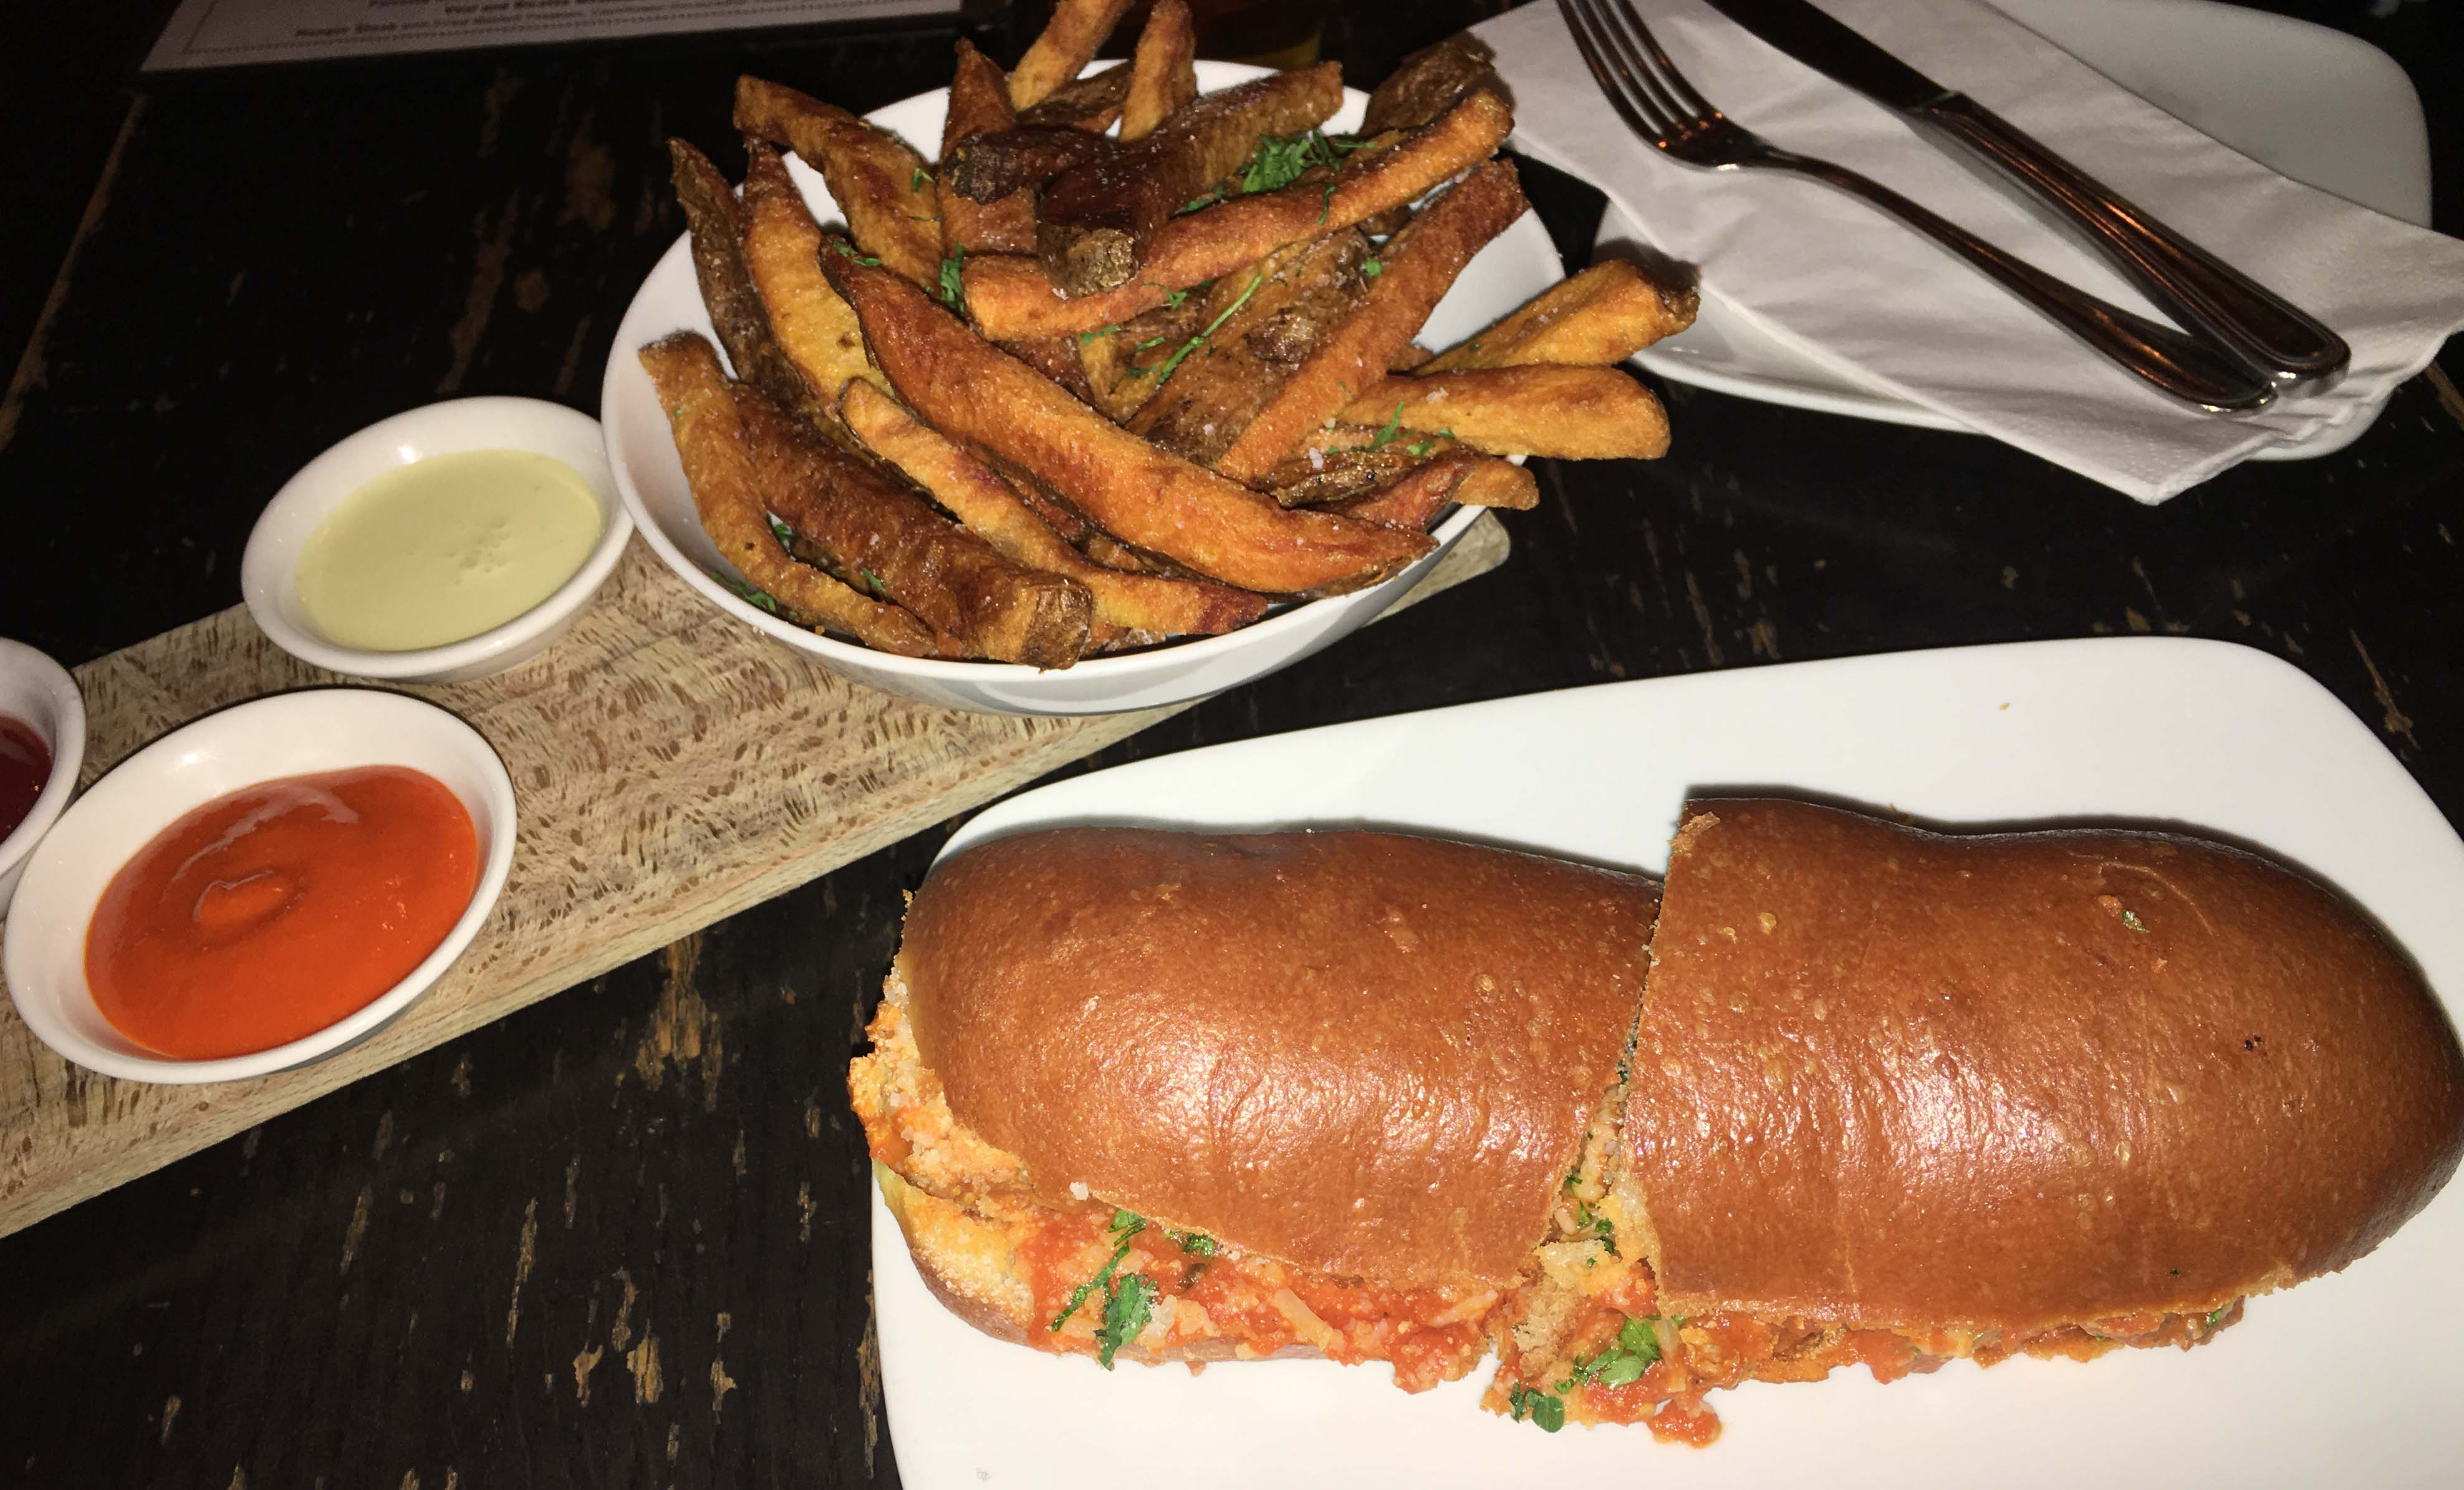 Terroir meatball sandwich and fries